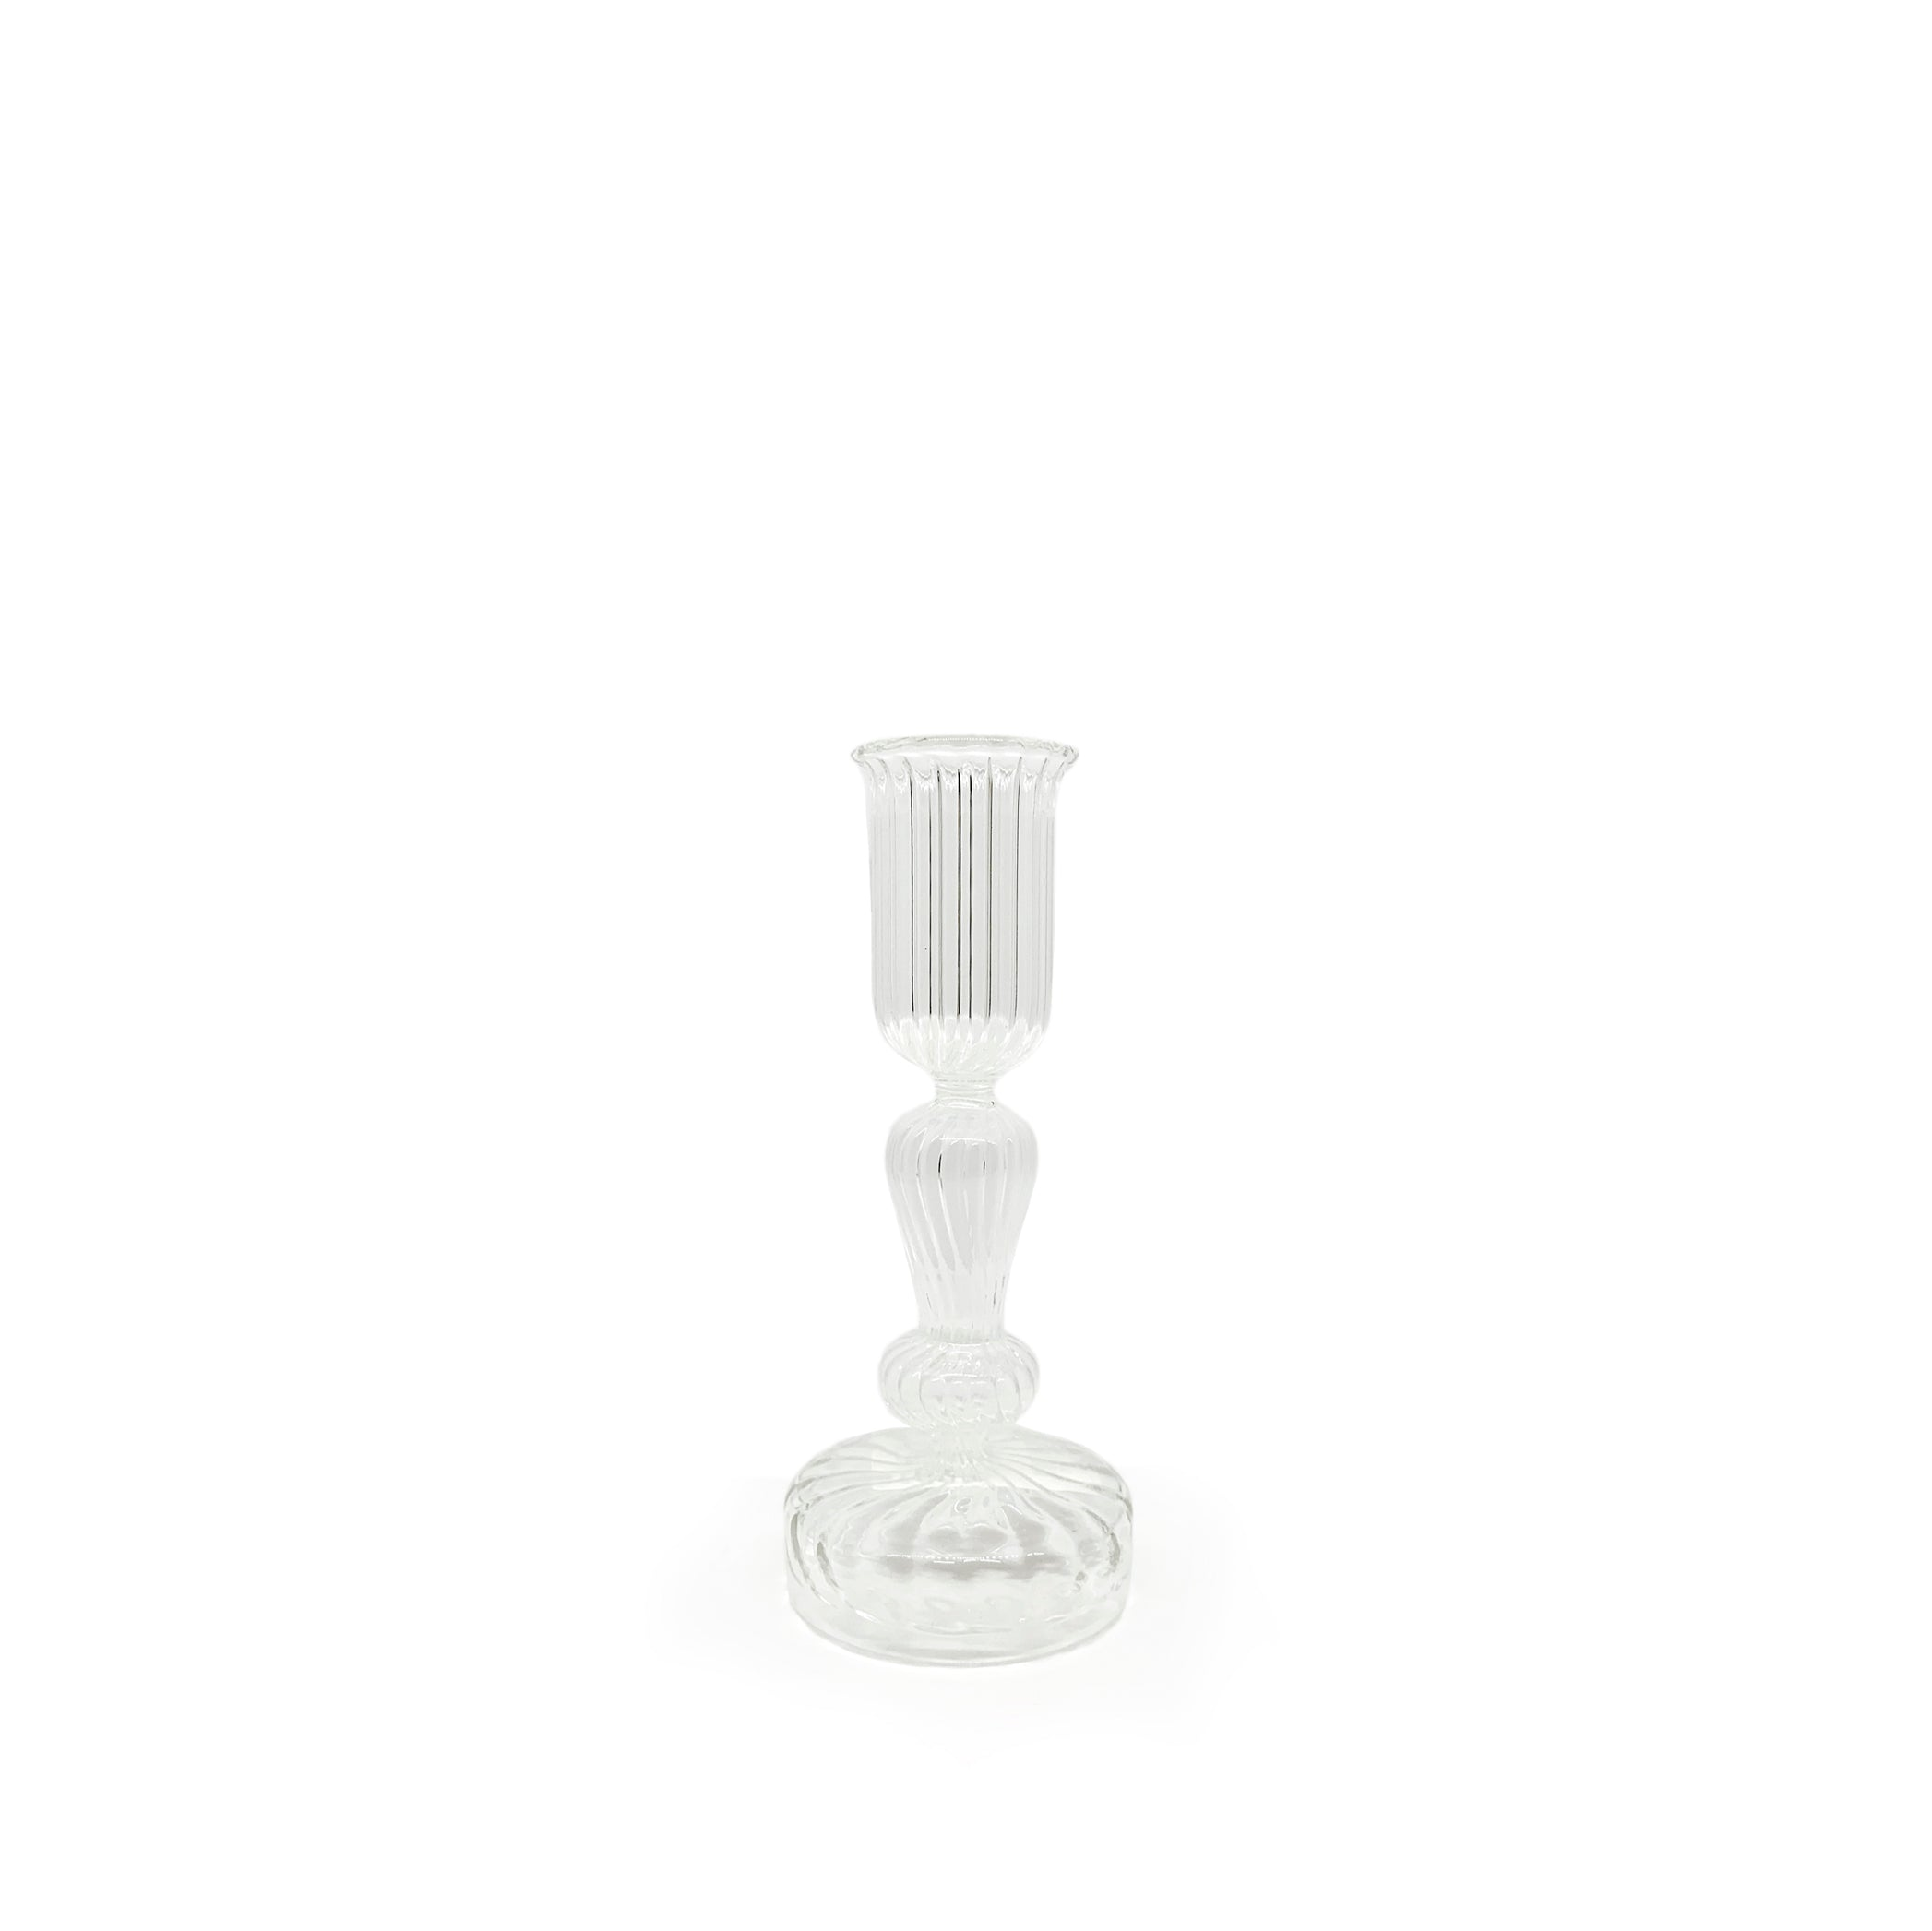 Handblown Ribbed Pillar Glass Candlestick, Medium